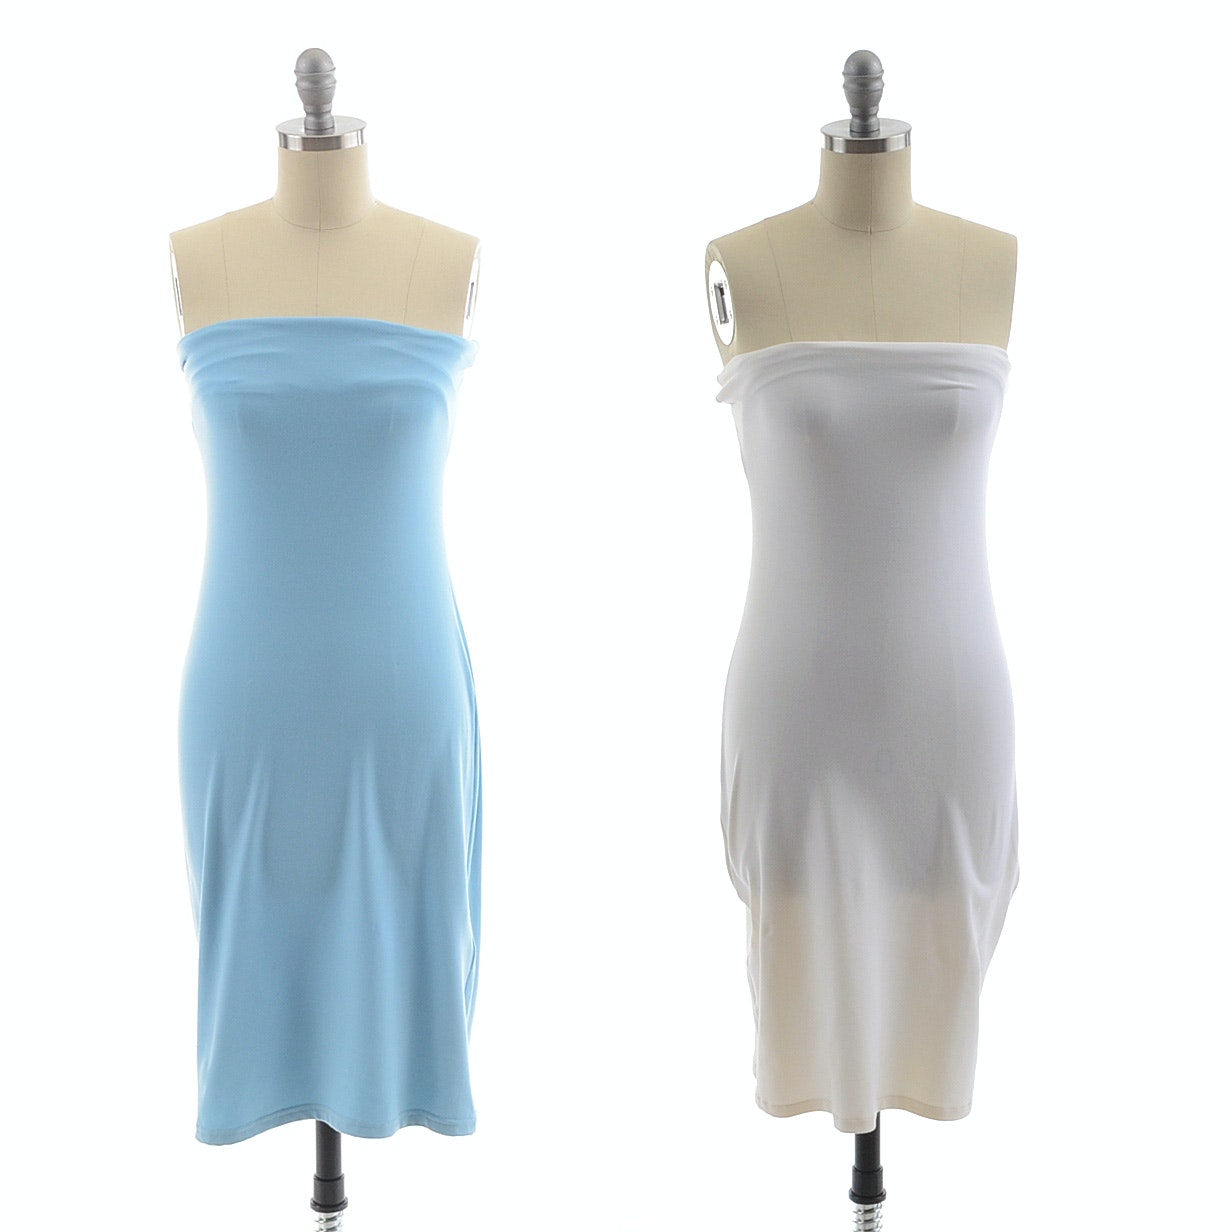 Two Susana Monaco Strapless Supplex Blend Body Con Dresses in White and Powder Blue